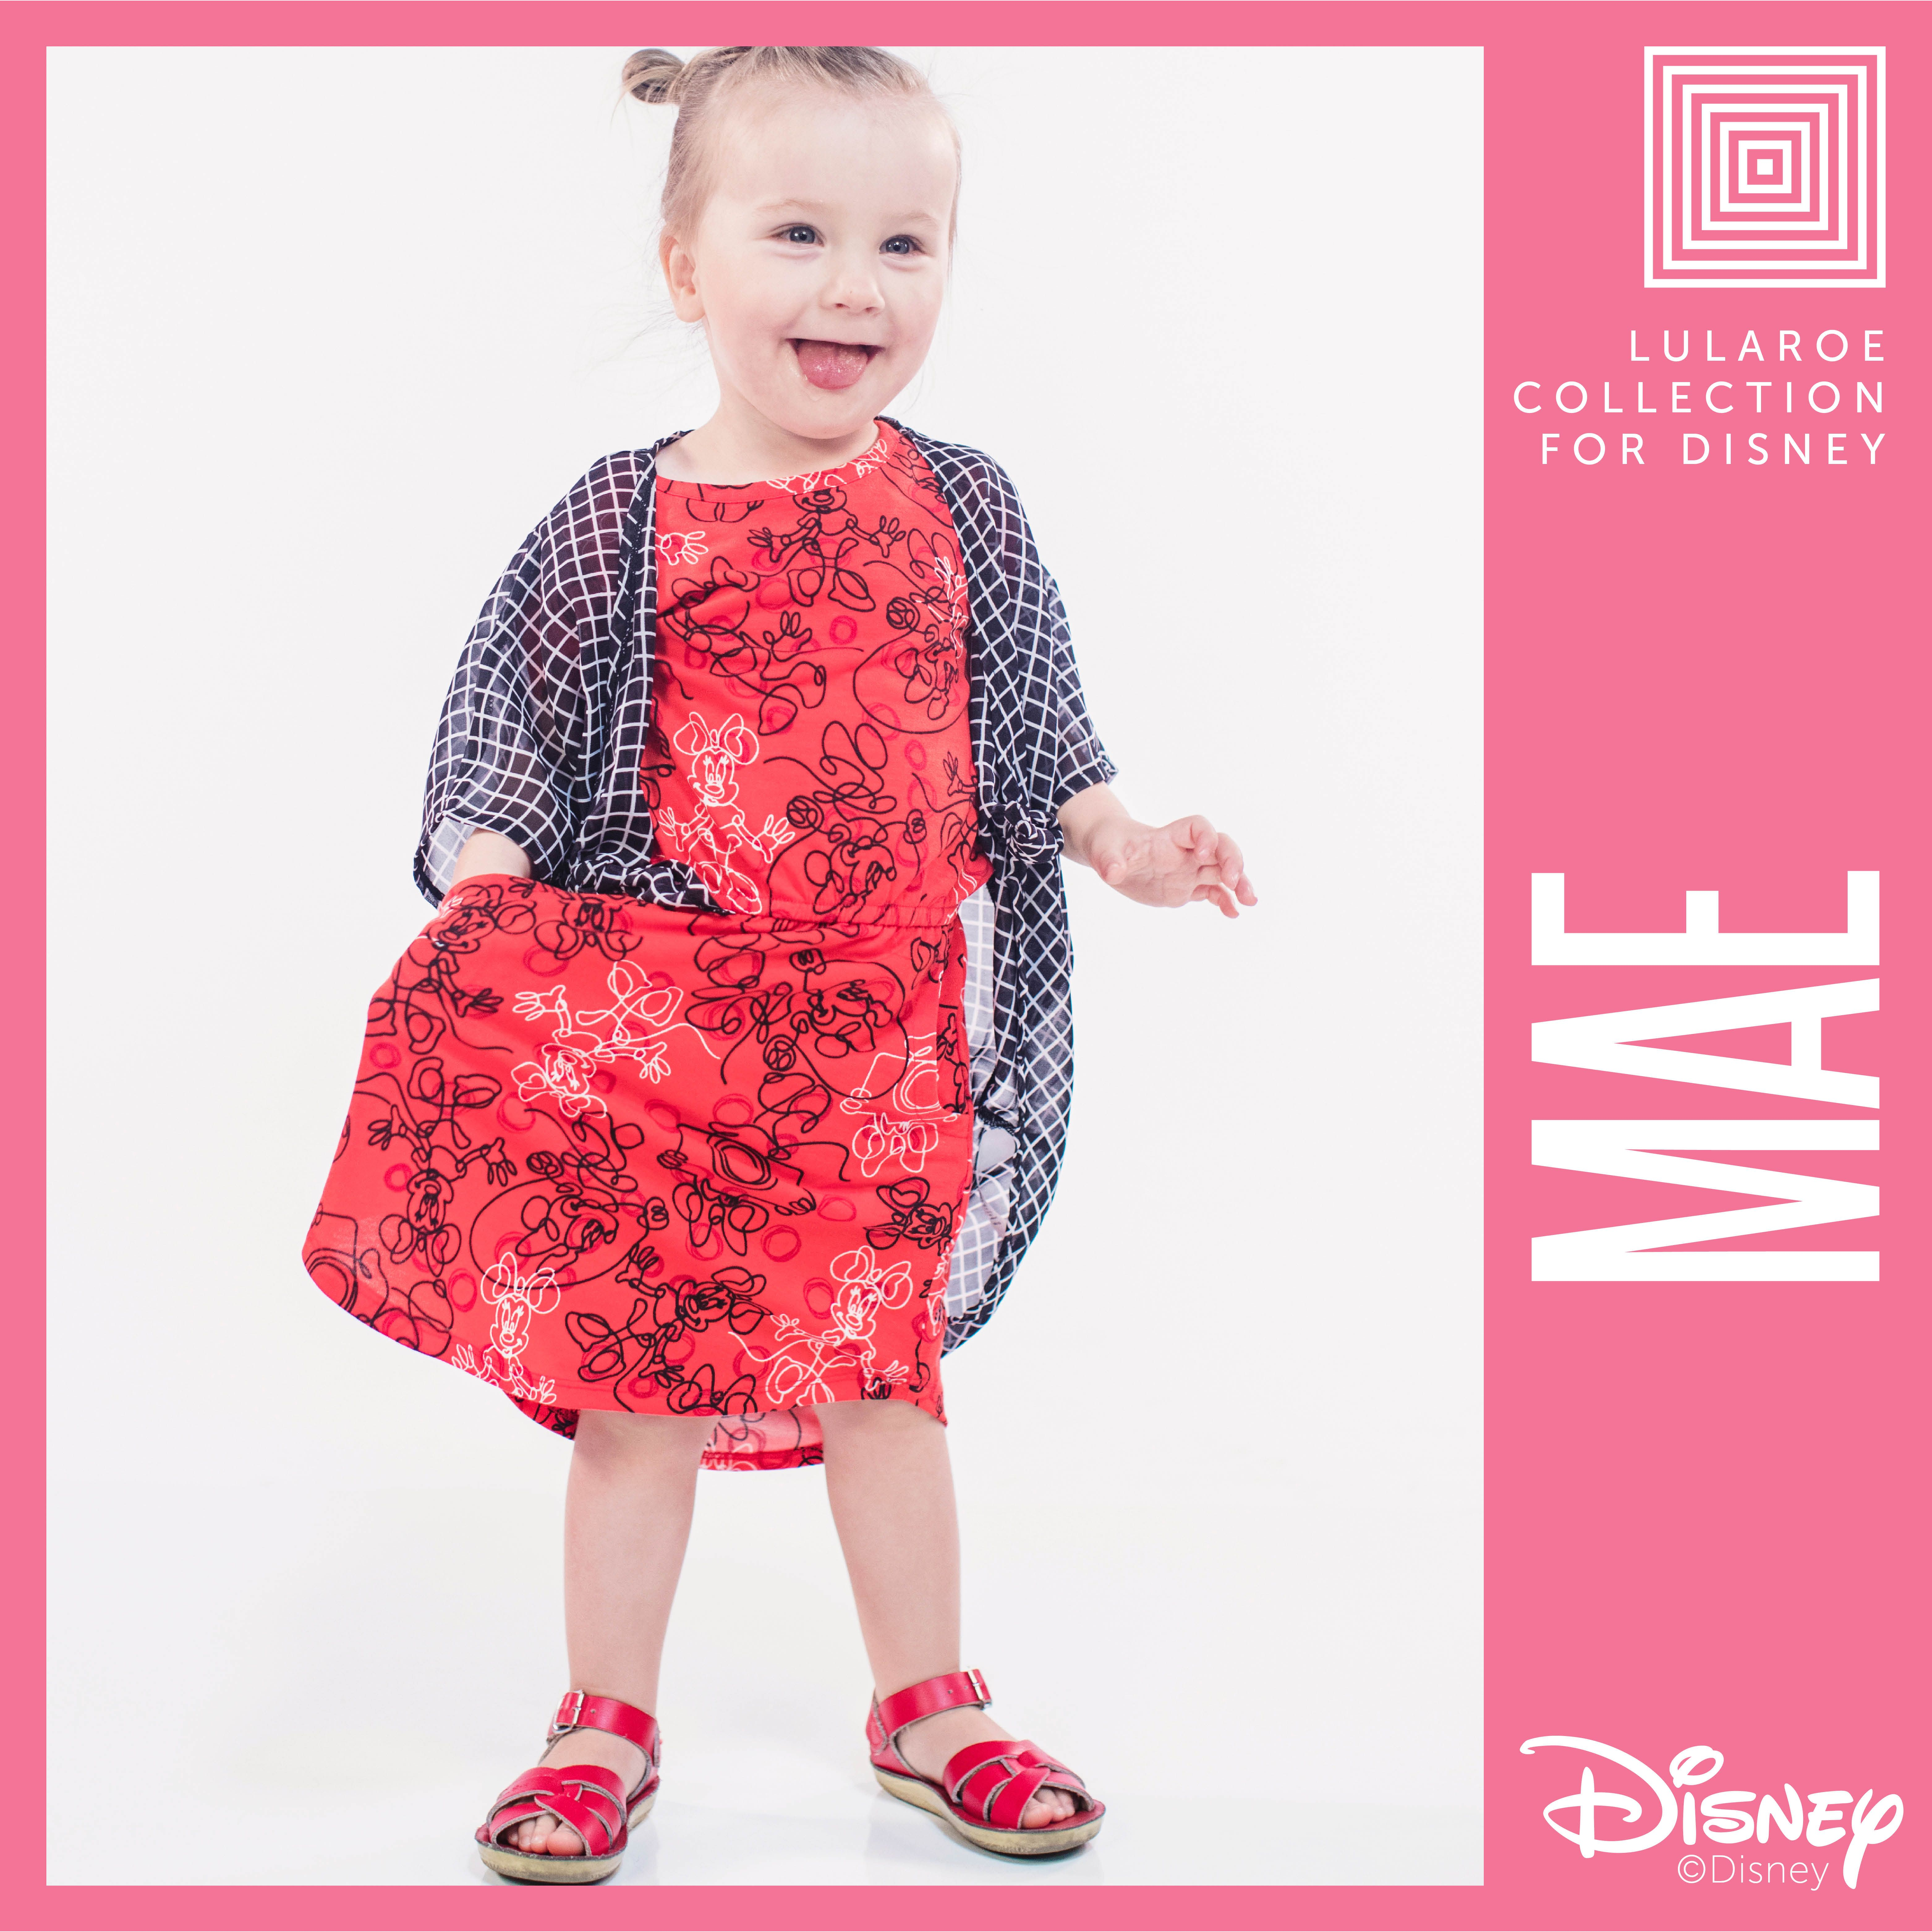 0e2d3f9a4b335c The LuLaRoe Collection for Disney is an exciting new collaboration that  will see many of Disney's beloved characters on some of your favorite  LuLaRoe pieces ...